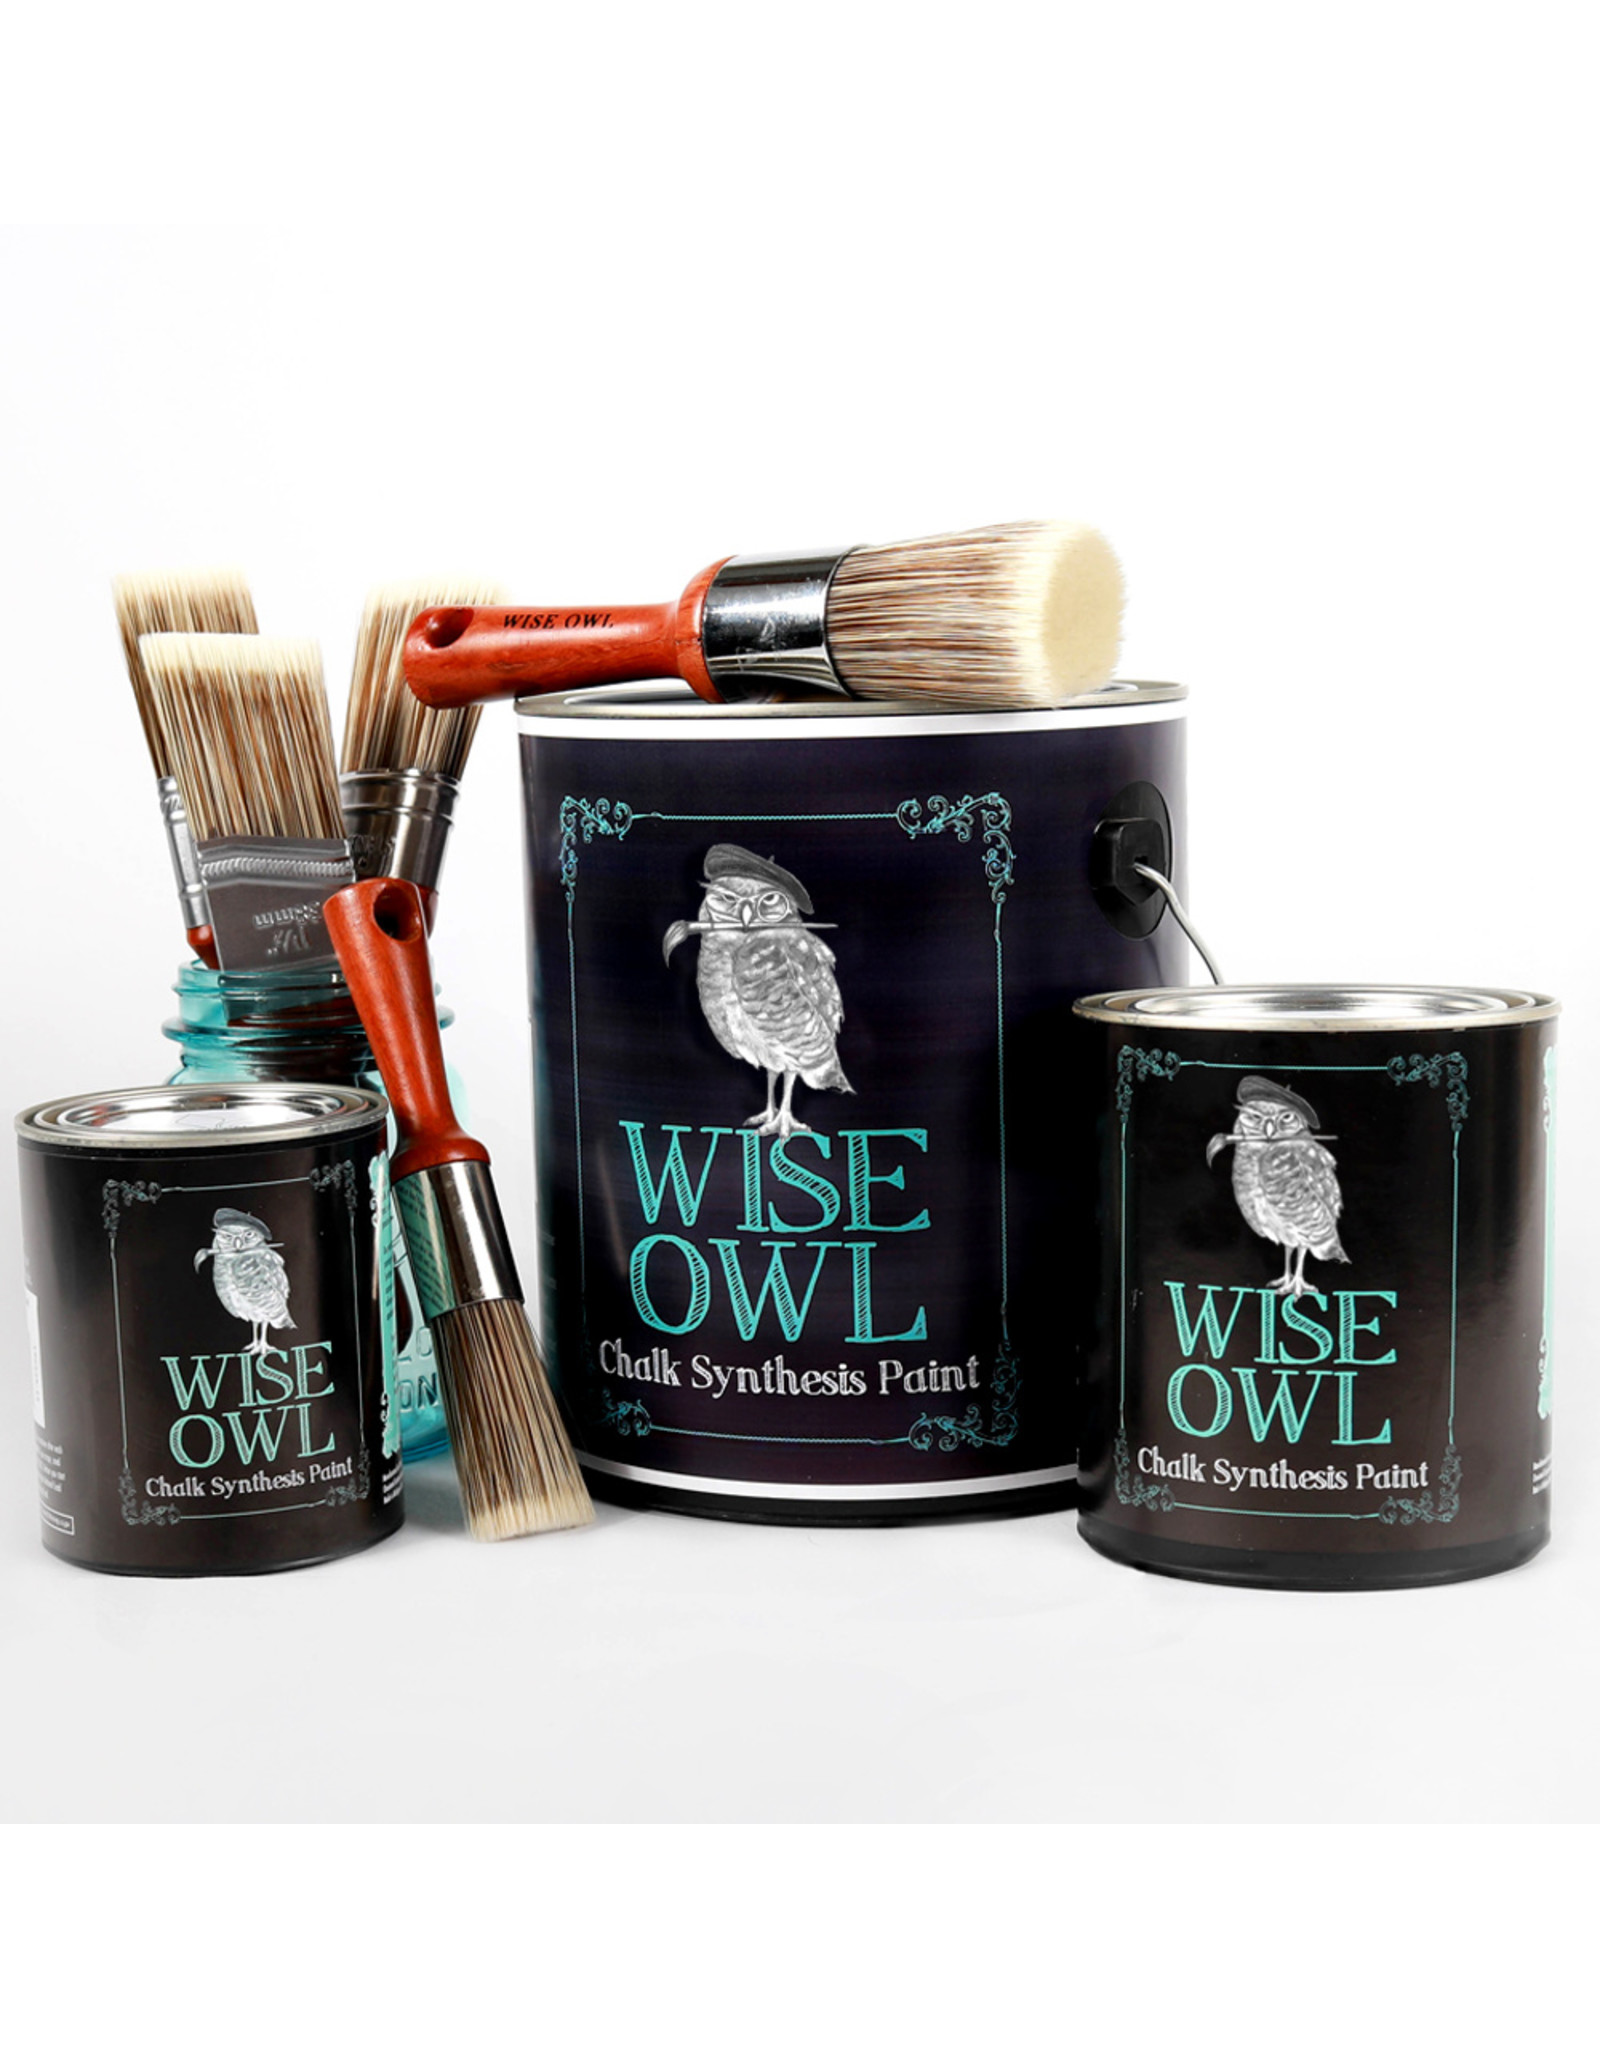 Wise Owl Paint Chalk Synthesis Paint-Spanish Olive Pint